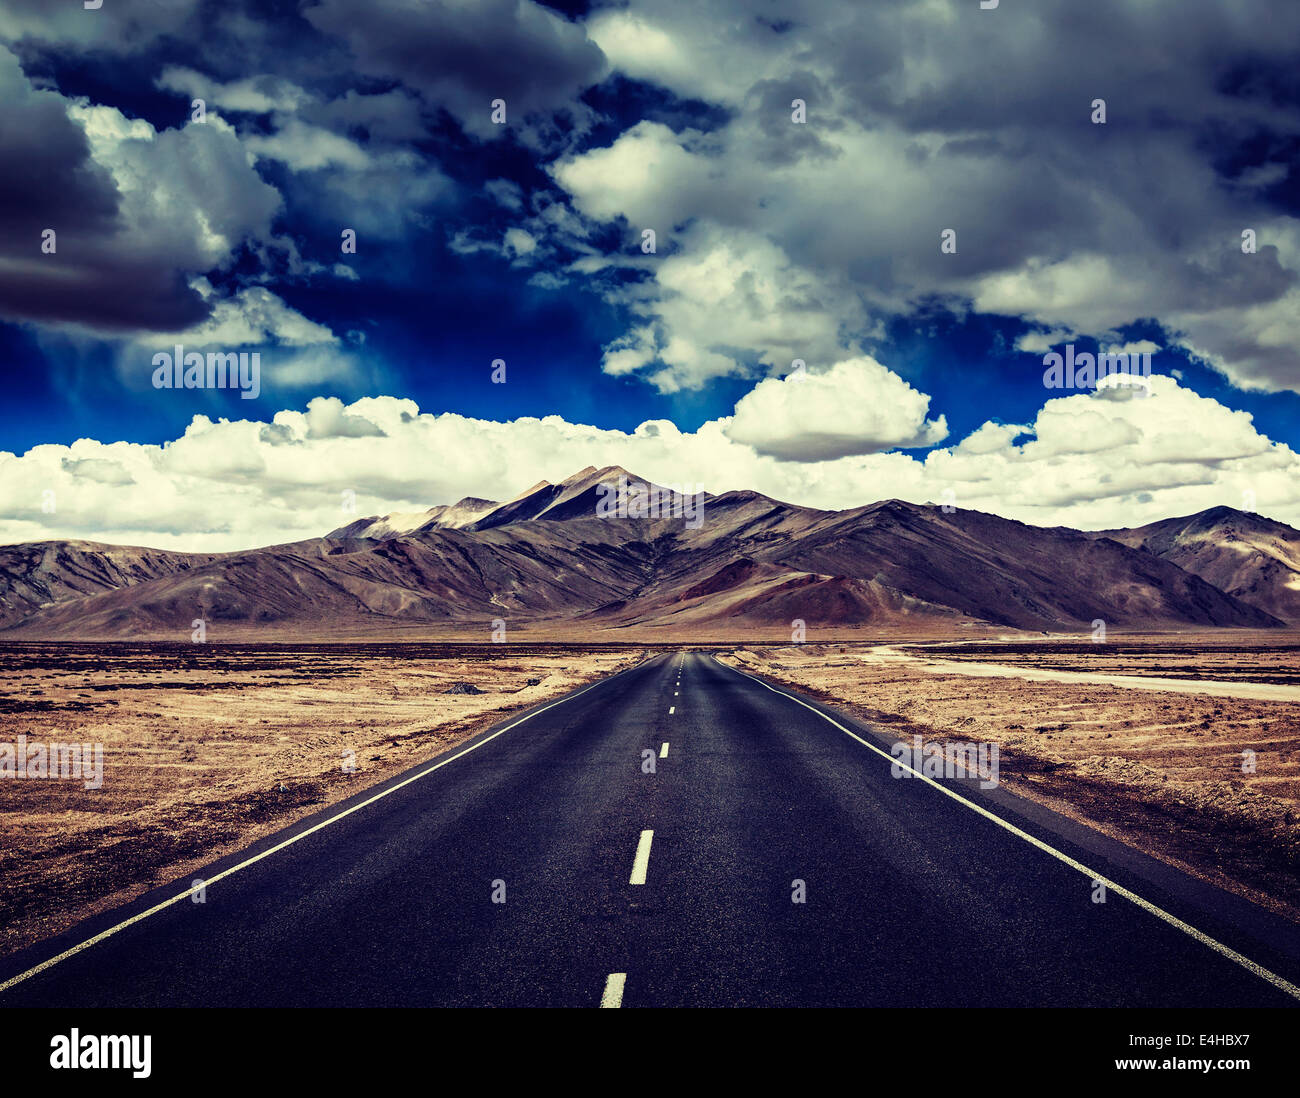 Vintage retro effect filtered hipster style travel image of Travel forward concept background - road on plains in - Stock Image